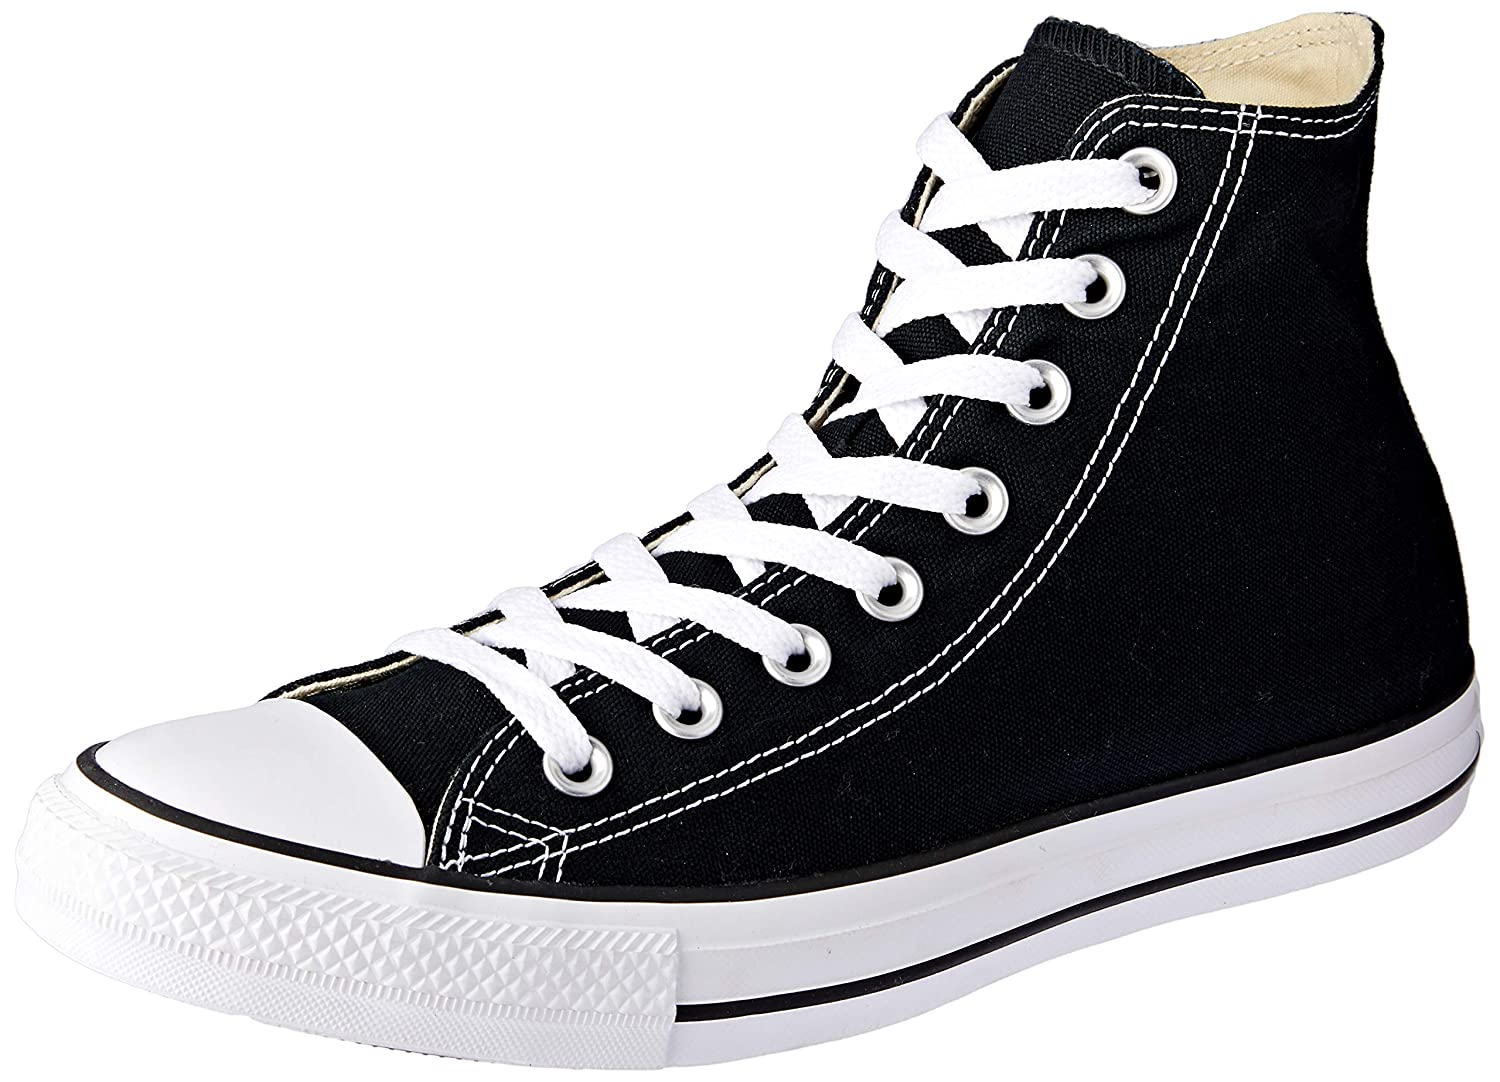 TALLA 40 EU. Converse Chuck Taylor All Star Hi Canvas, Zapatillas Altas Unisex Adulto